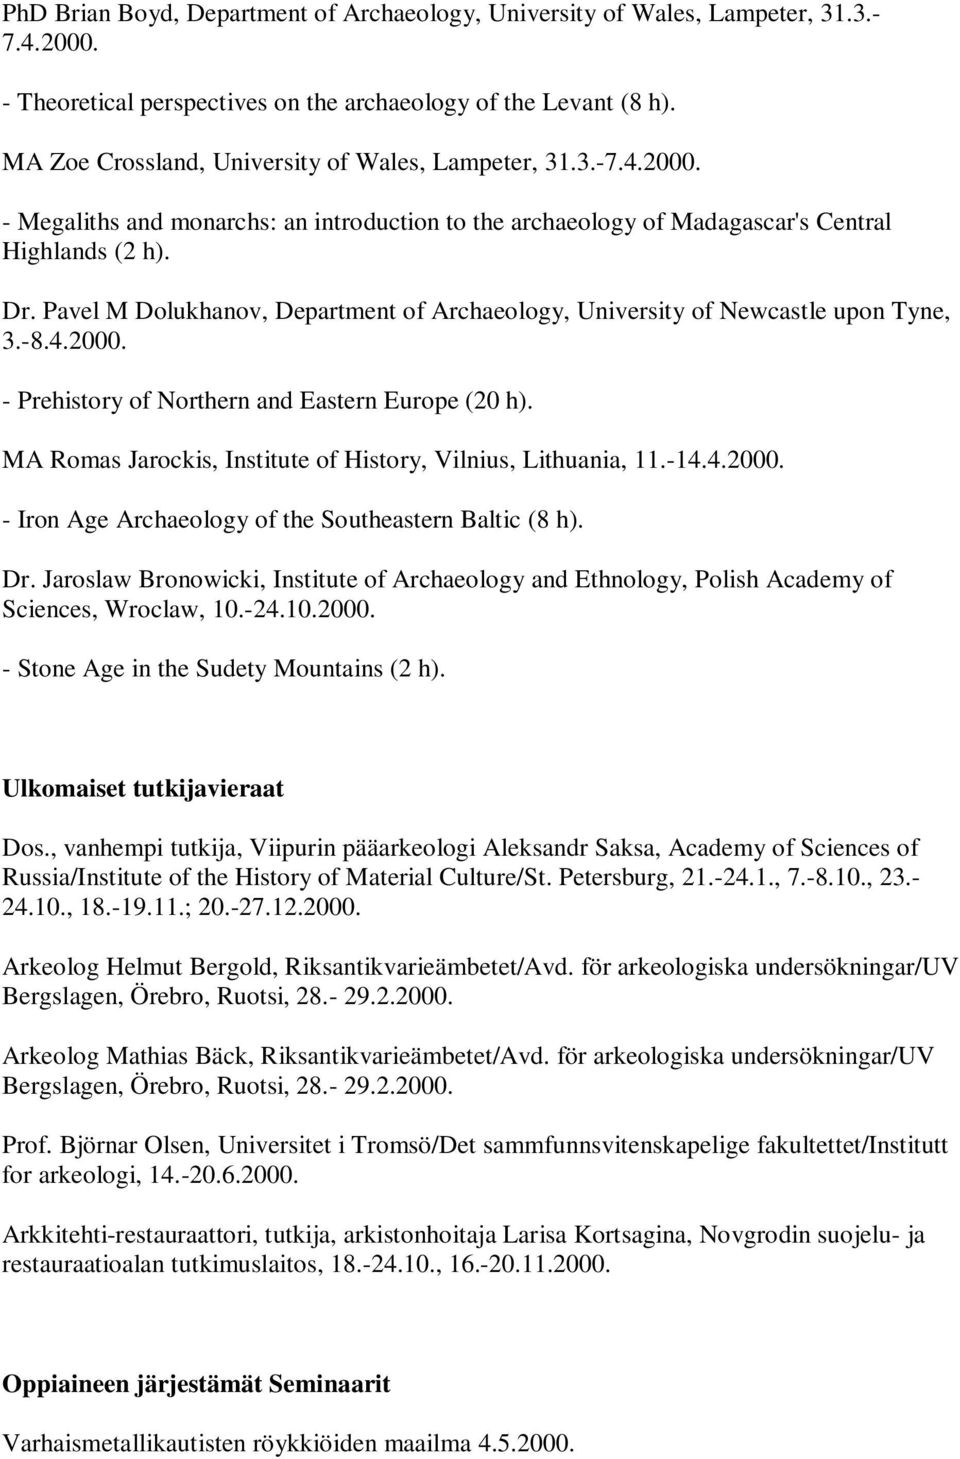 Pavel M Dolukhanov, Department of Archaeology, University of Newcastle upon Tyne, 3.-8.4.2000. - Prehistory of Northern and Eastern Europe (20 h).